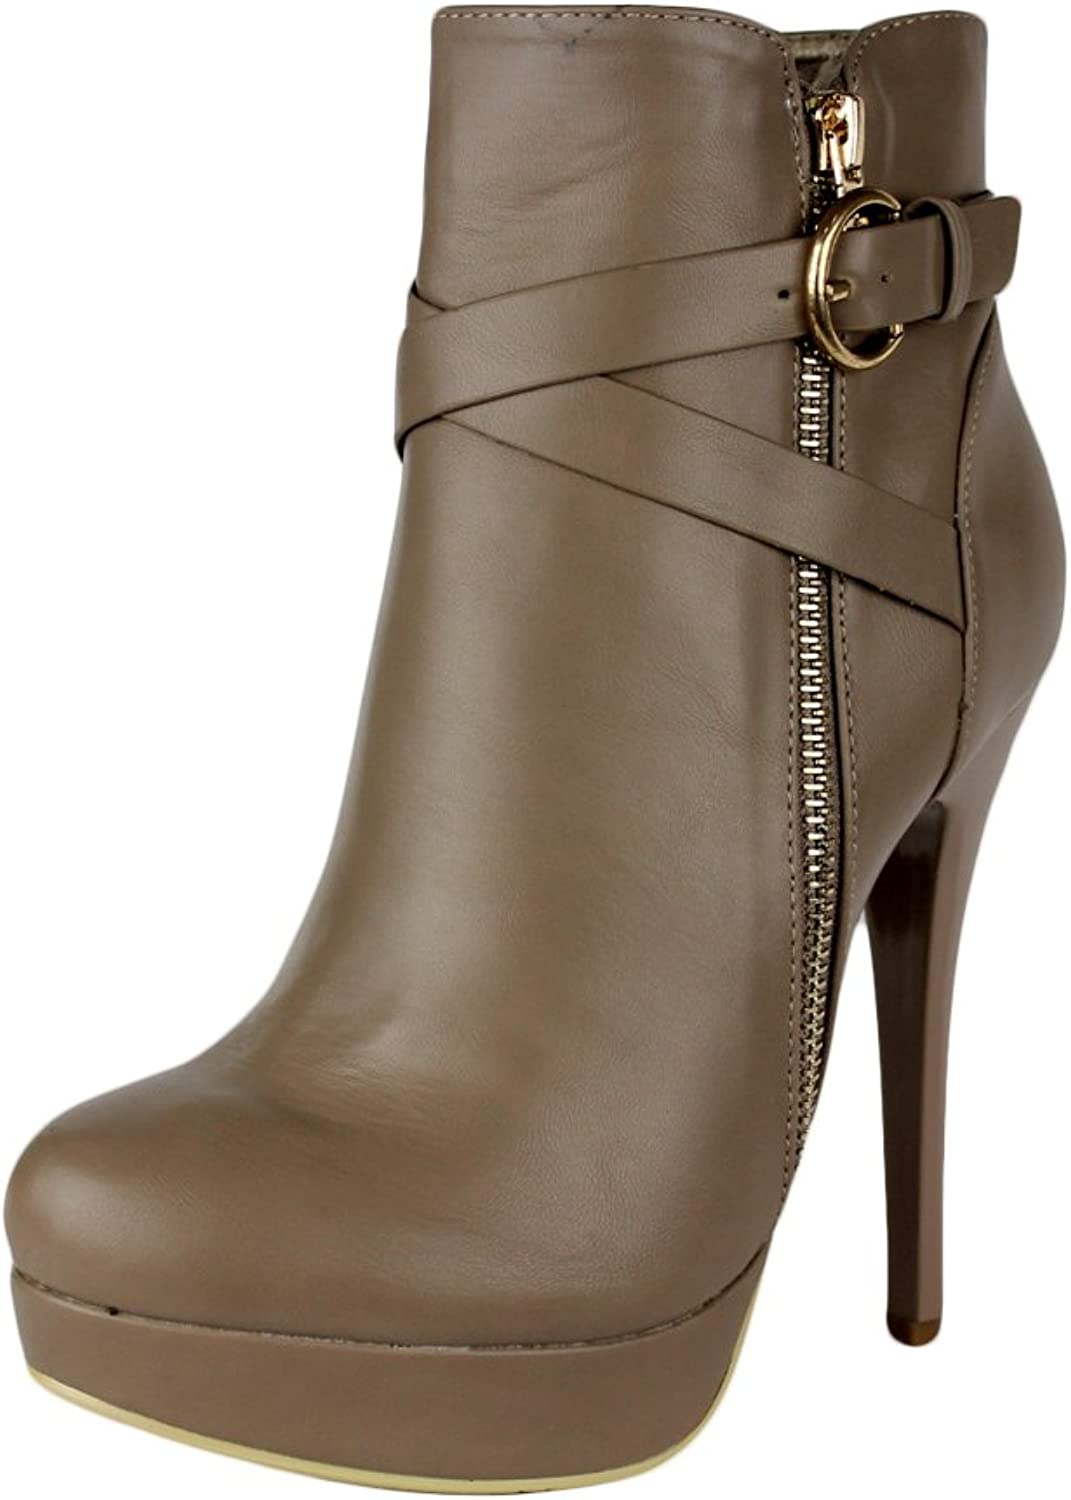 KSC Womens Strappy Stiletto Booties Platform High Heel Ankle Boots